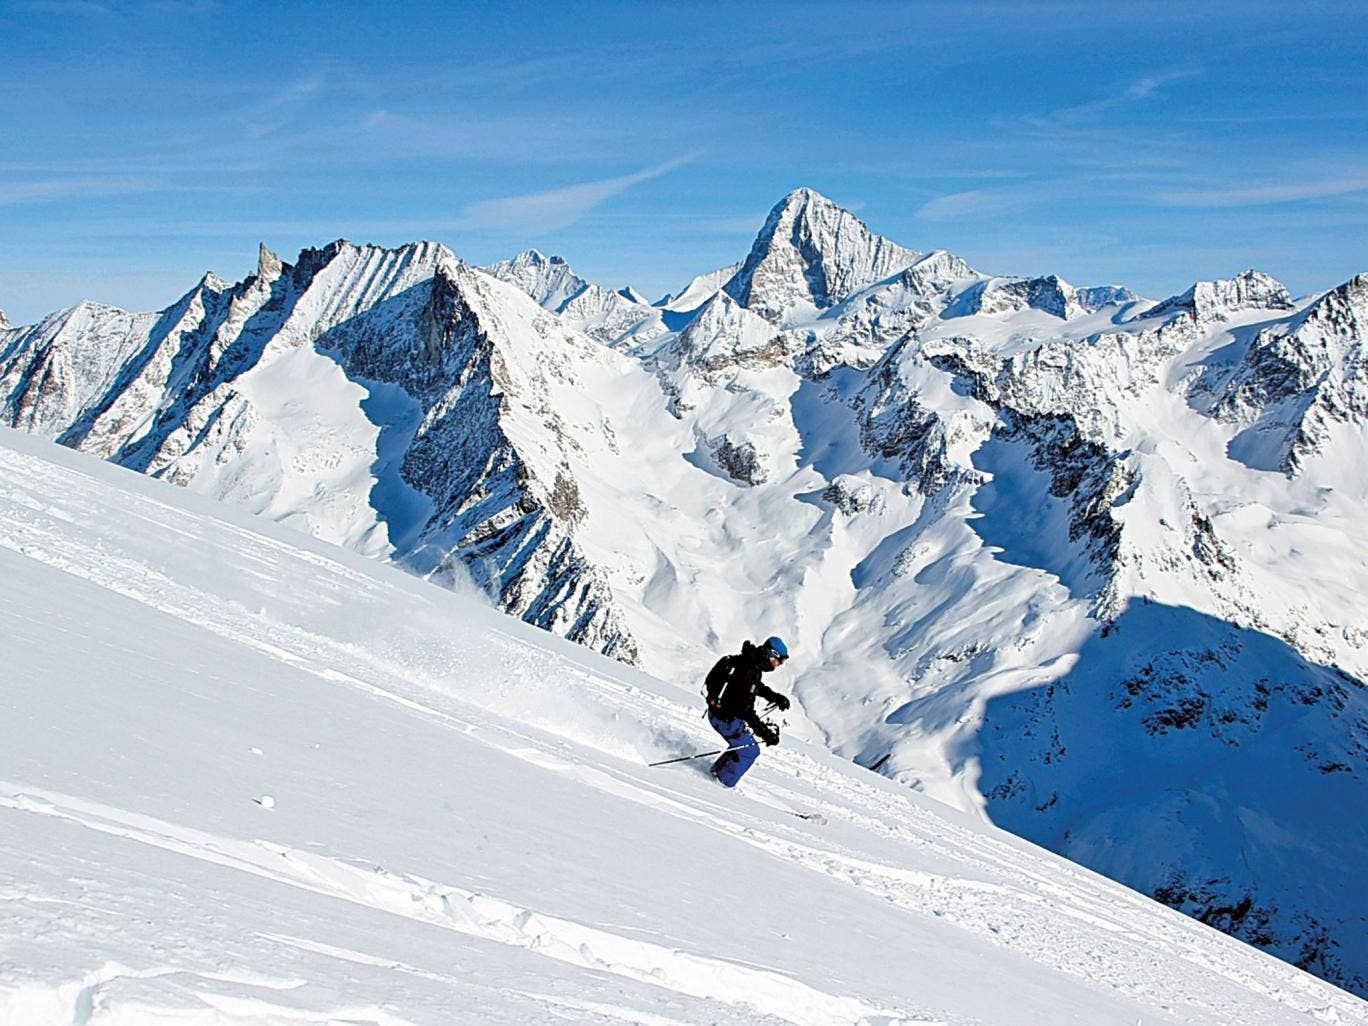 It's downhill from here: Simon skiing from the summit of the Pigne d'Arolla, accessed via a 10-minute helicopter ride from Grimentz (Image: Felix Milns)